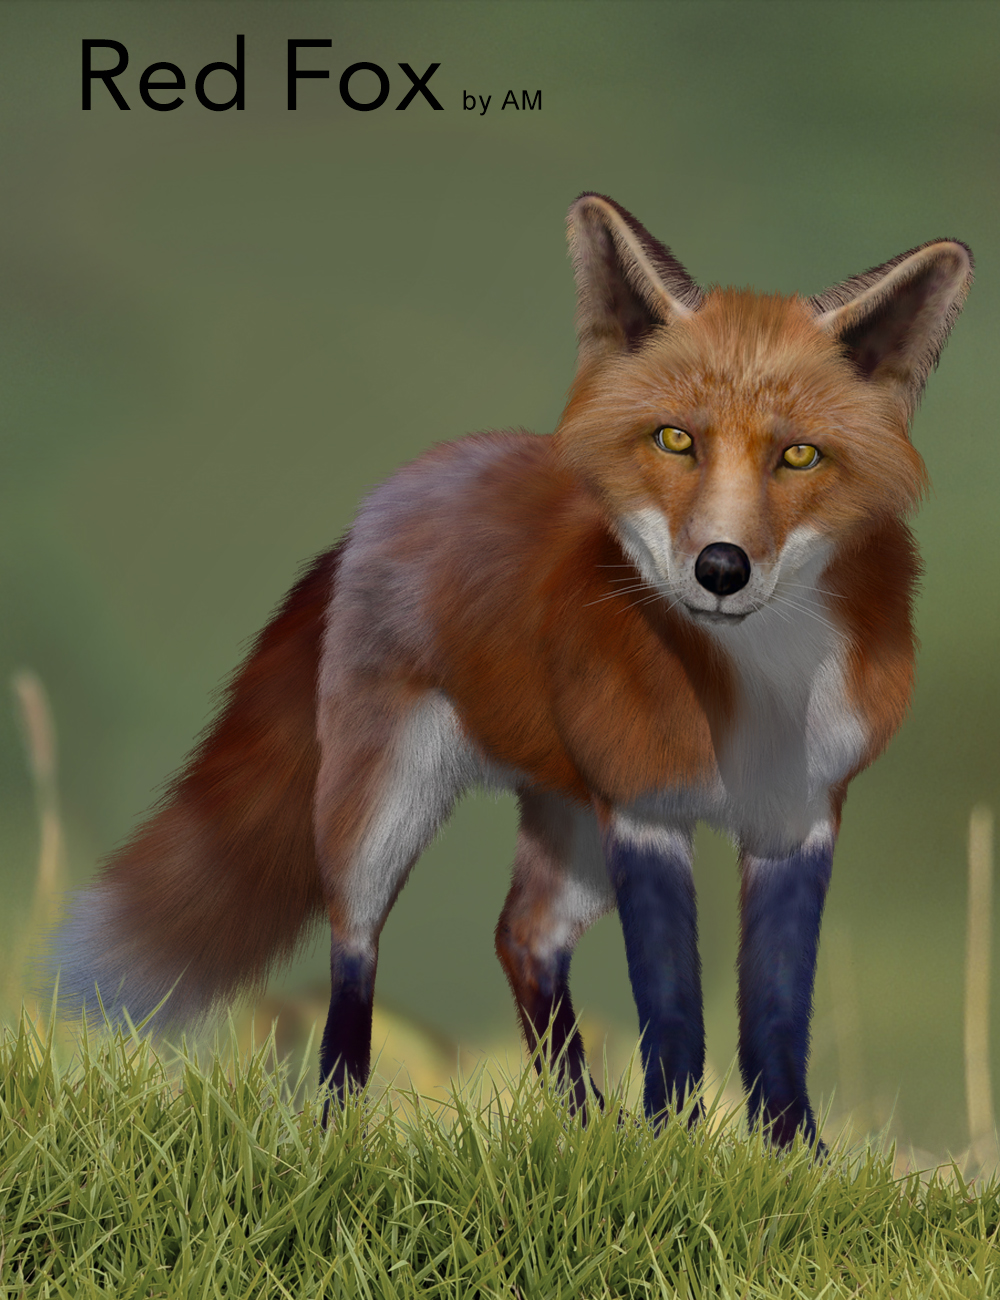 Red Fox by AM by: Alessandro_AM, 3D Models by Daz 3D